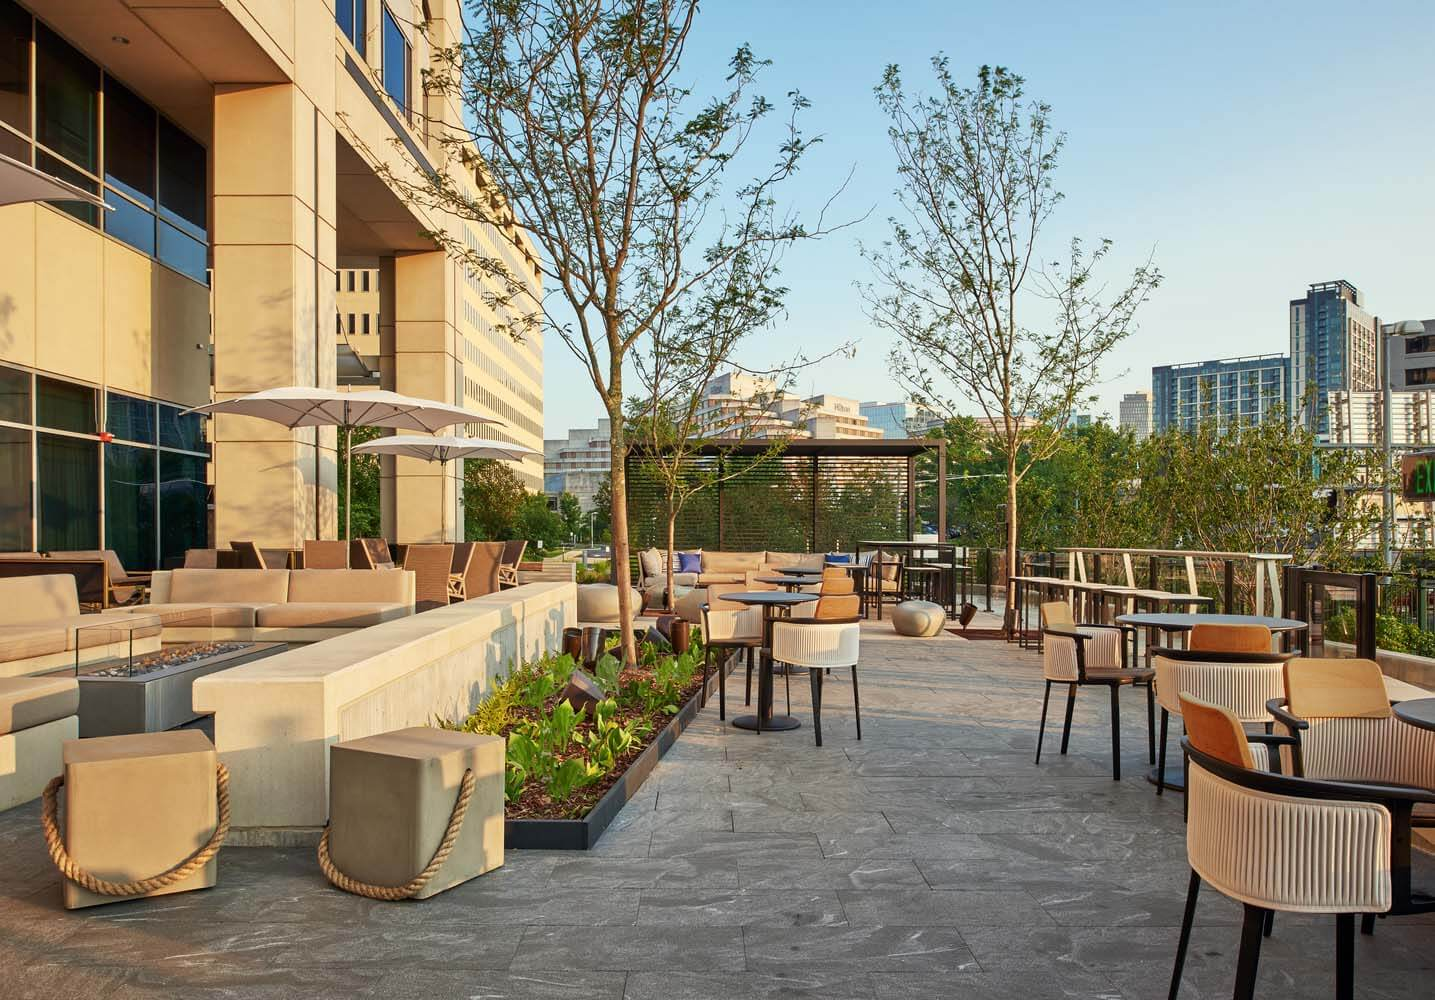 03 - The Social at Hilton Headquarters - Hilton_Terrace_02.jpg